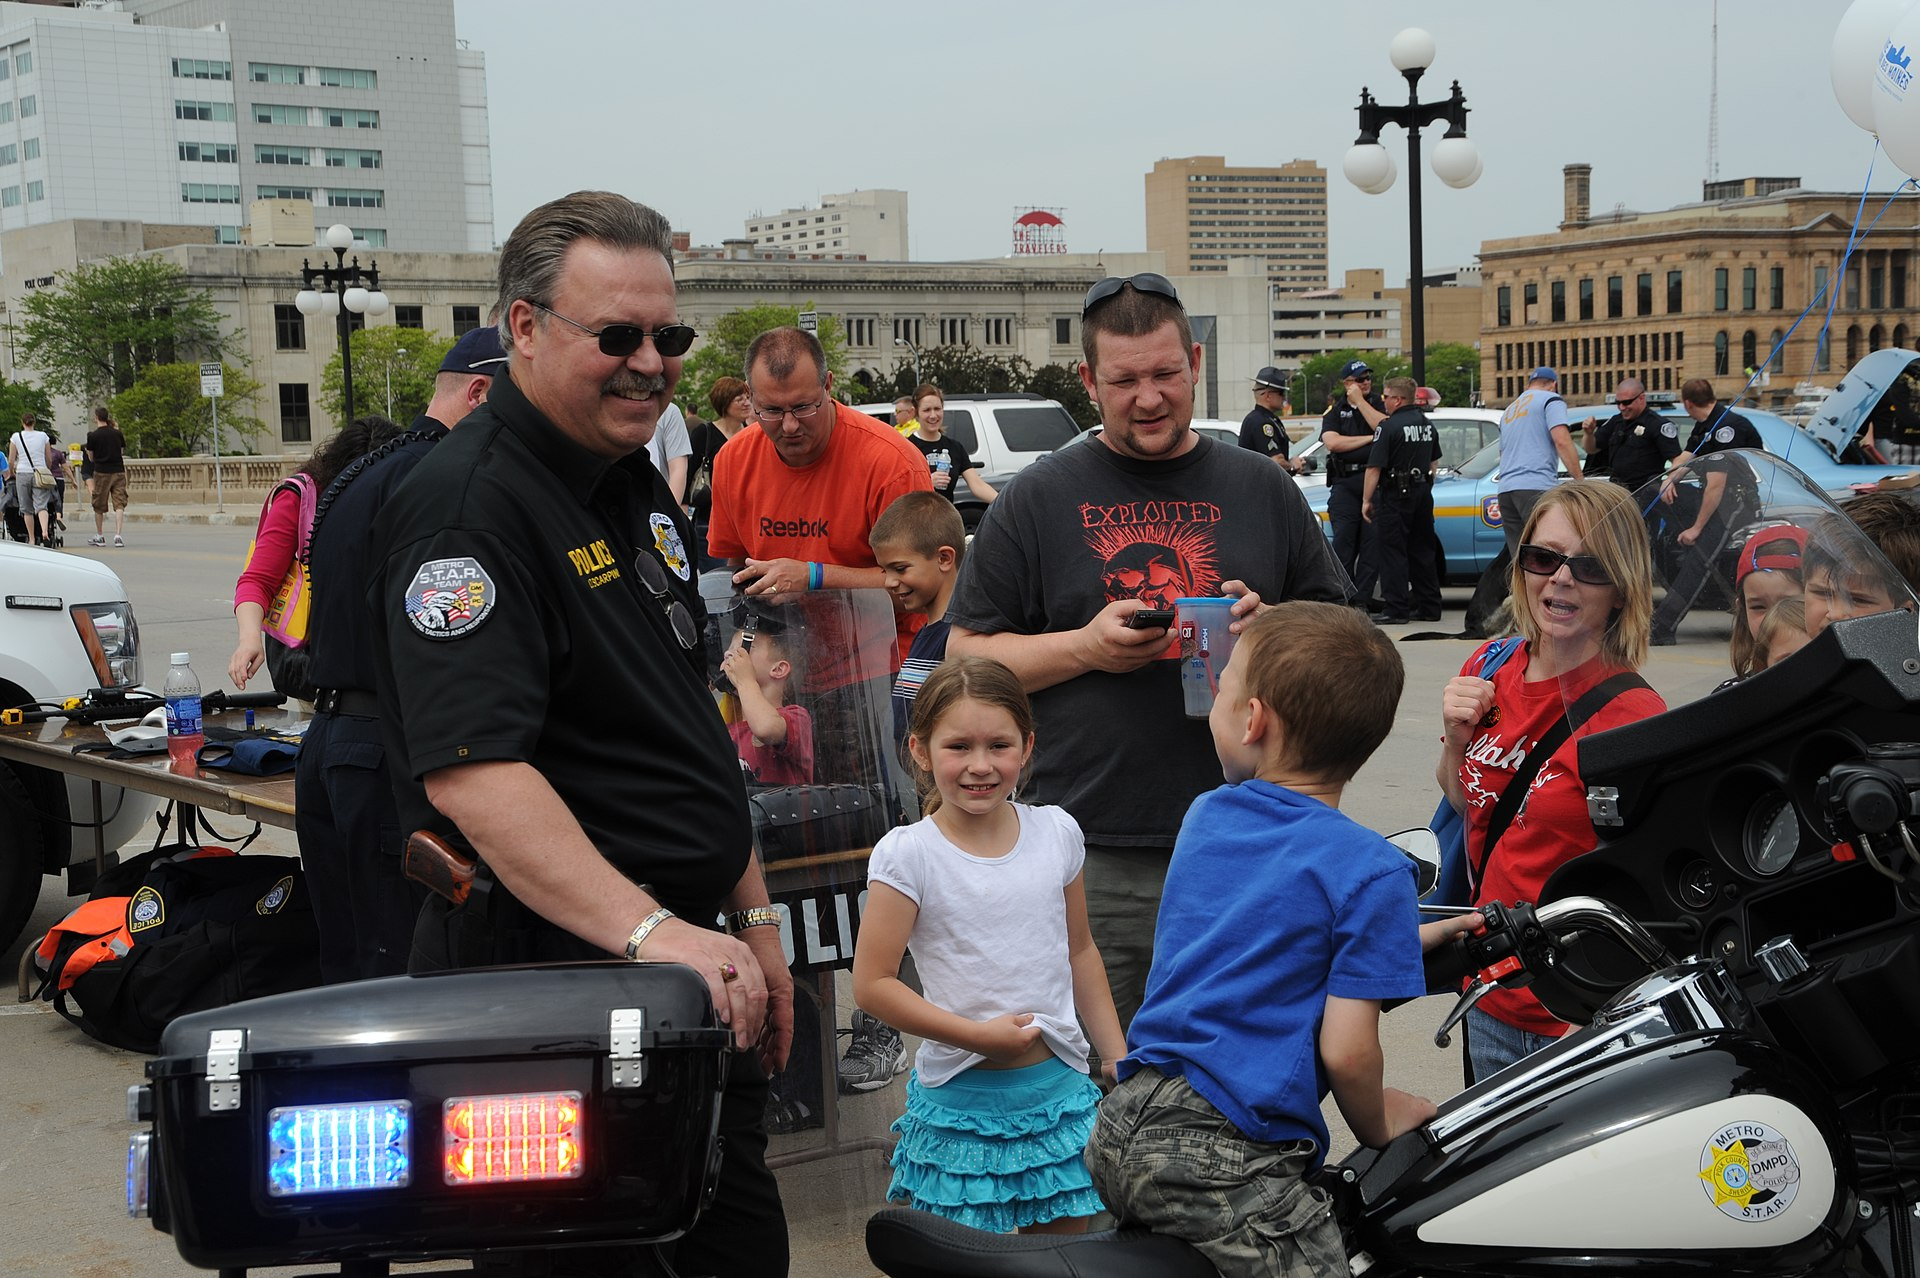 Community Policing Wikipedia px Police Week May   On Court Avenue Bridge Des Moines Iowa USA  Community Policing